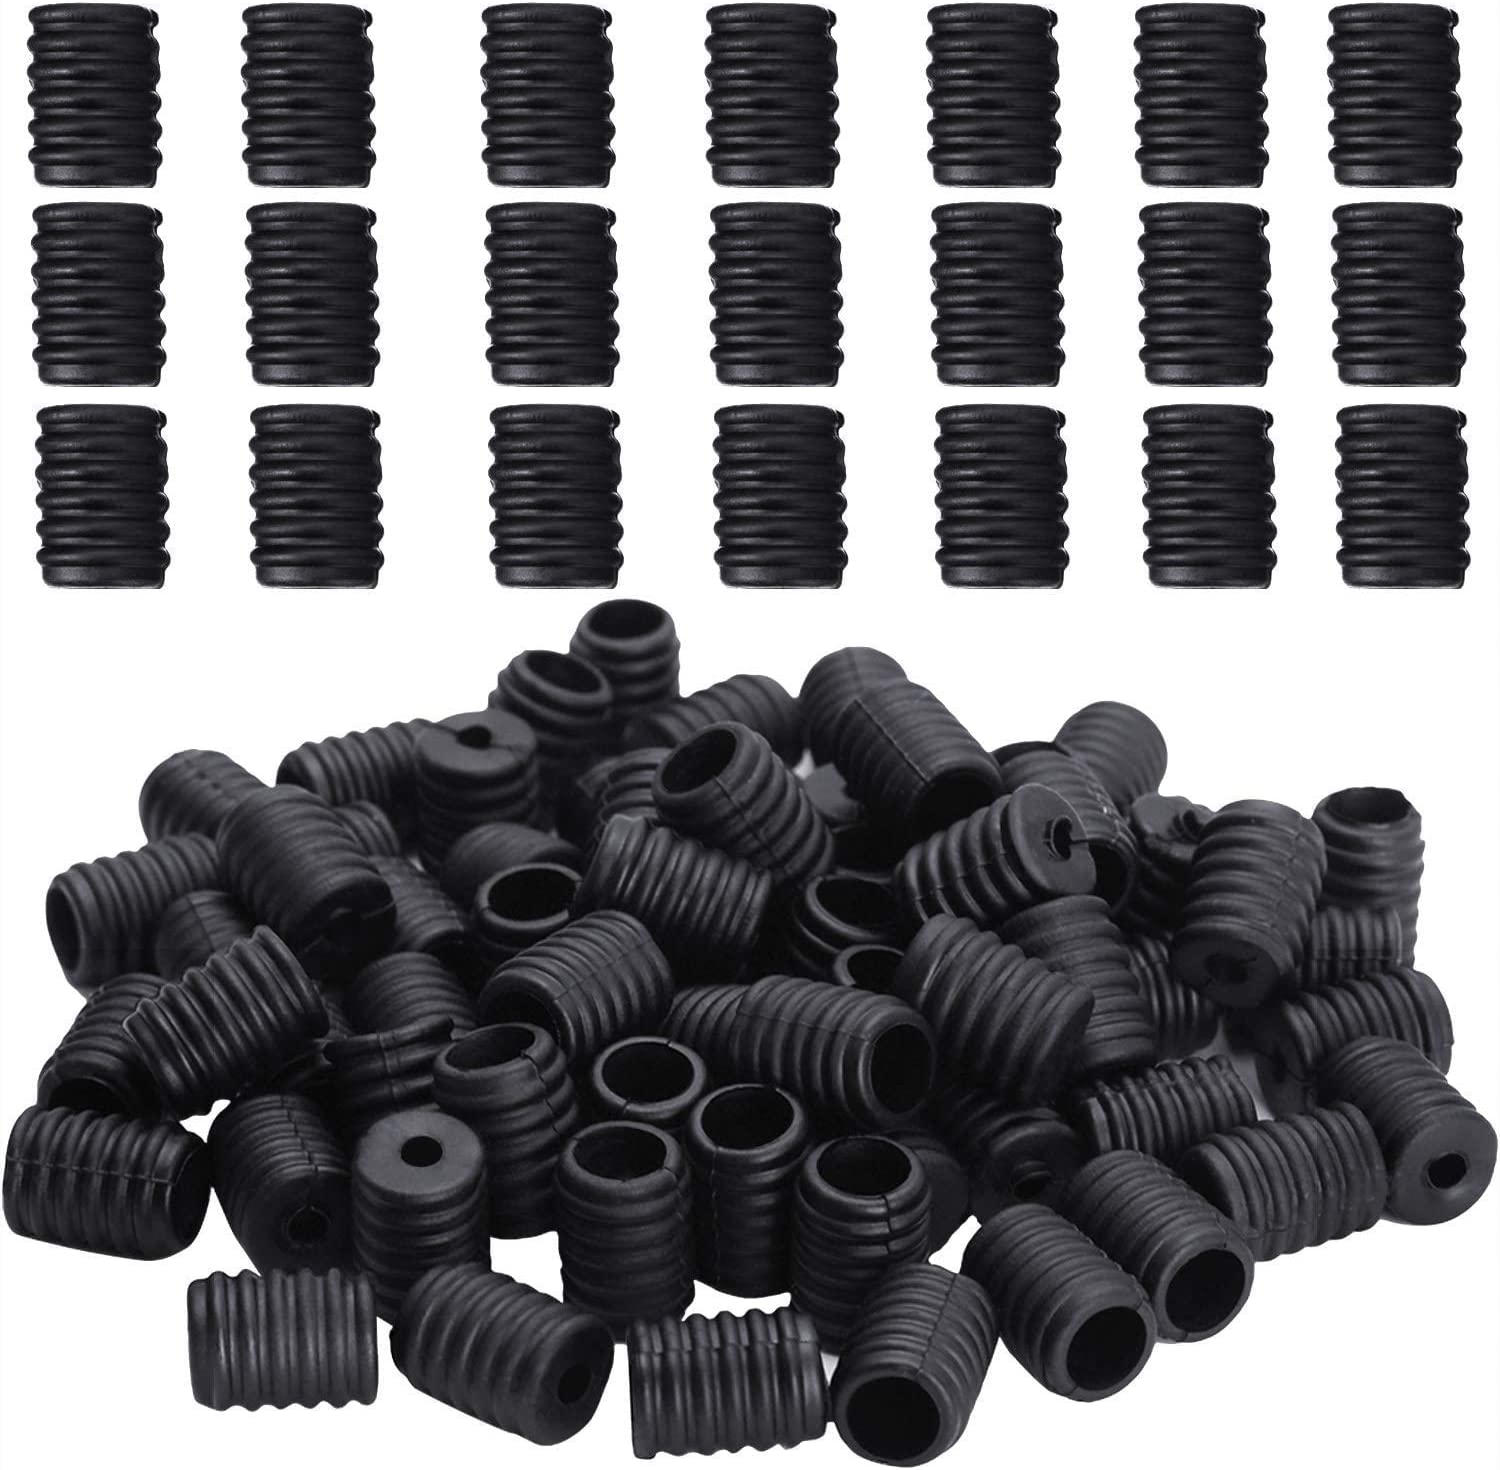 100PCS Elastic Mask Adjustment Buckles Silicone Round Cord Locks Toggles Anti Slip Face Cover Adjuster for Sewing Masks